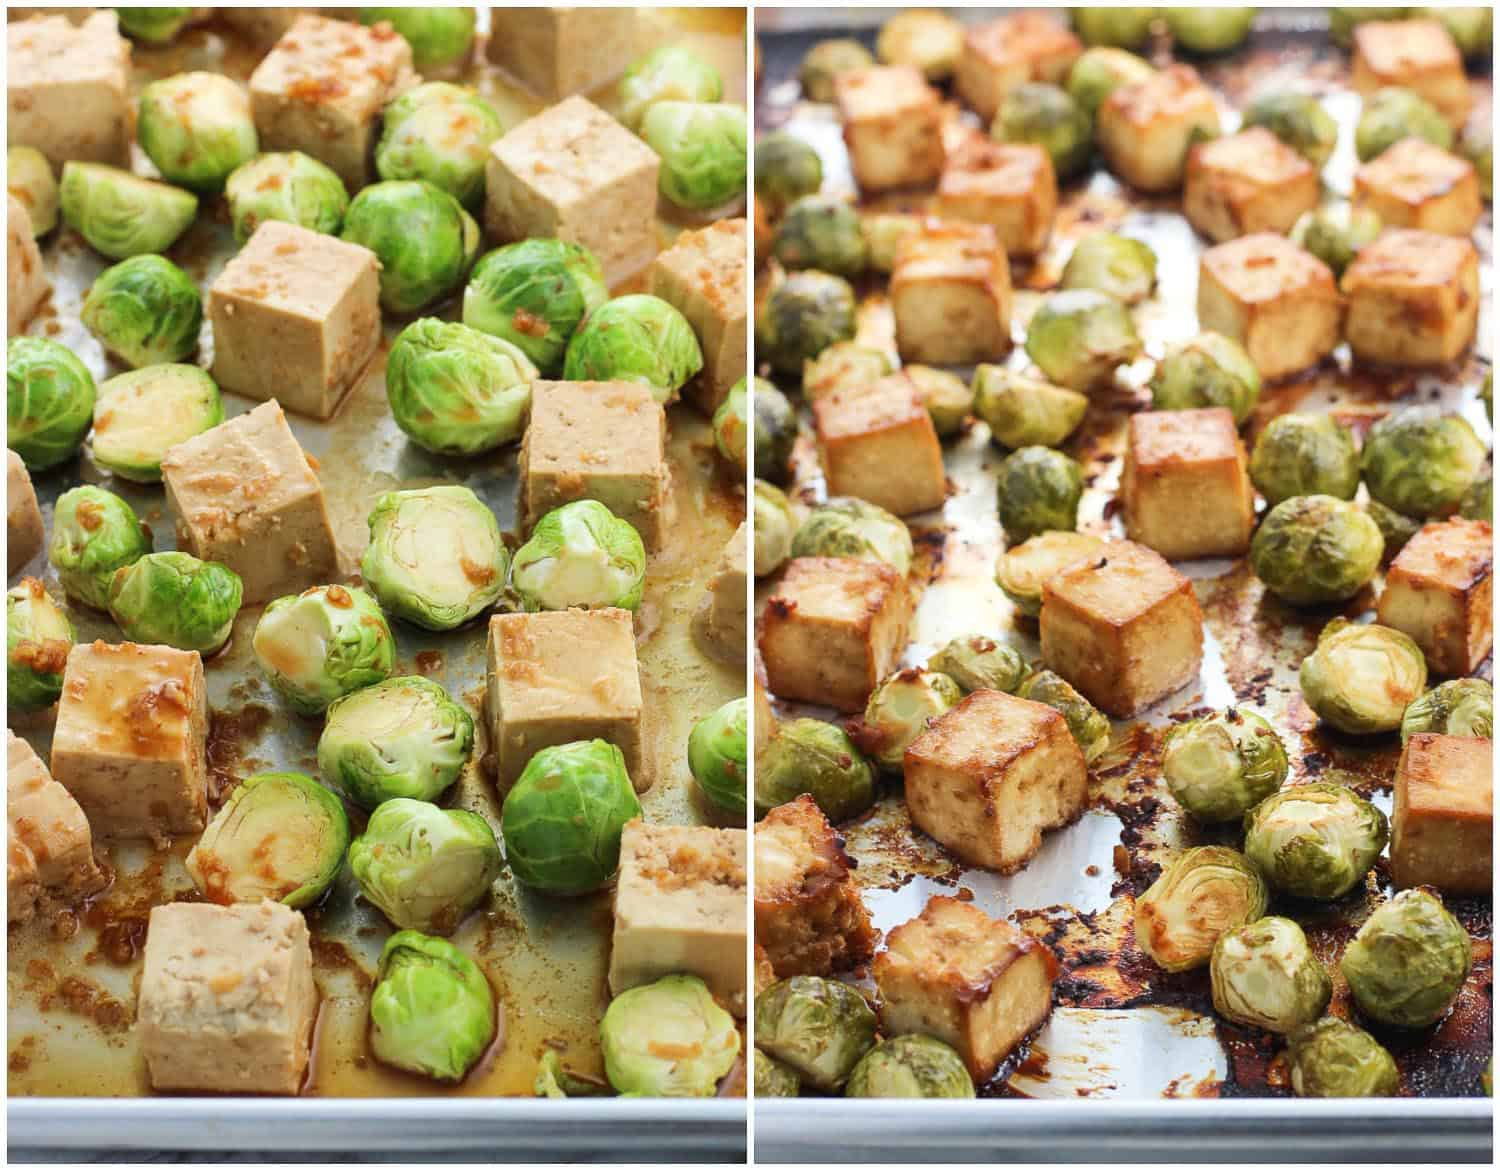 Sheet pan tofu with peanut sauce and brussels sprouts is a satisfying and healthy one-pan meal packed full of flavor. Perfect for Meatless Mondays (or anyday)!